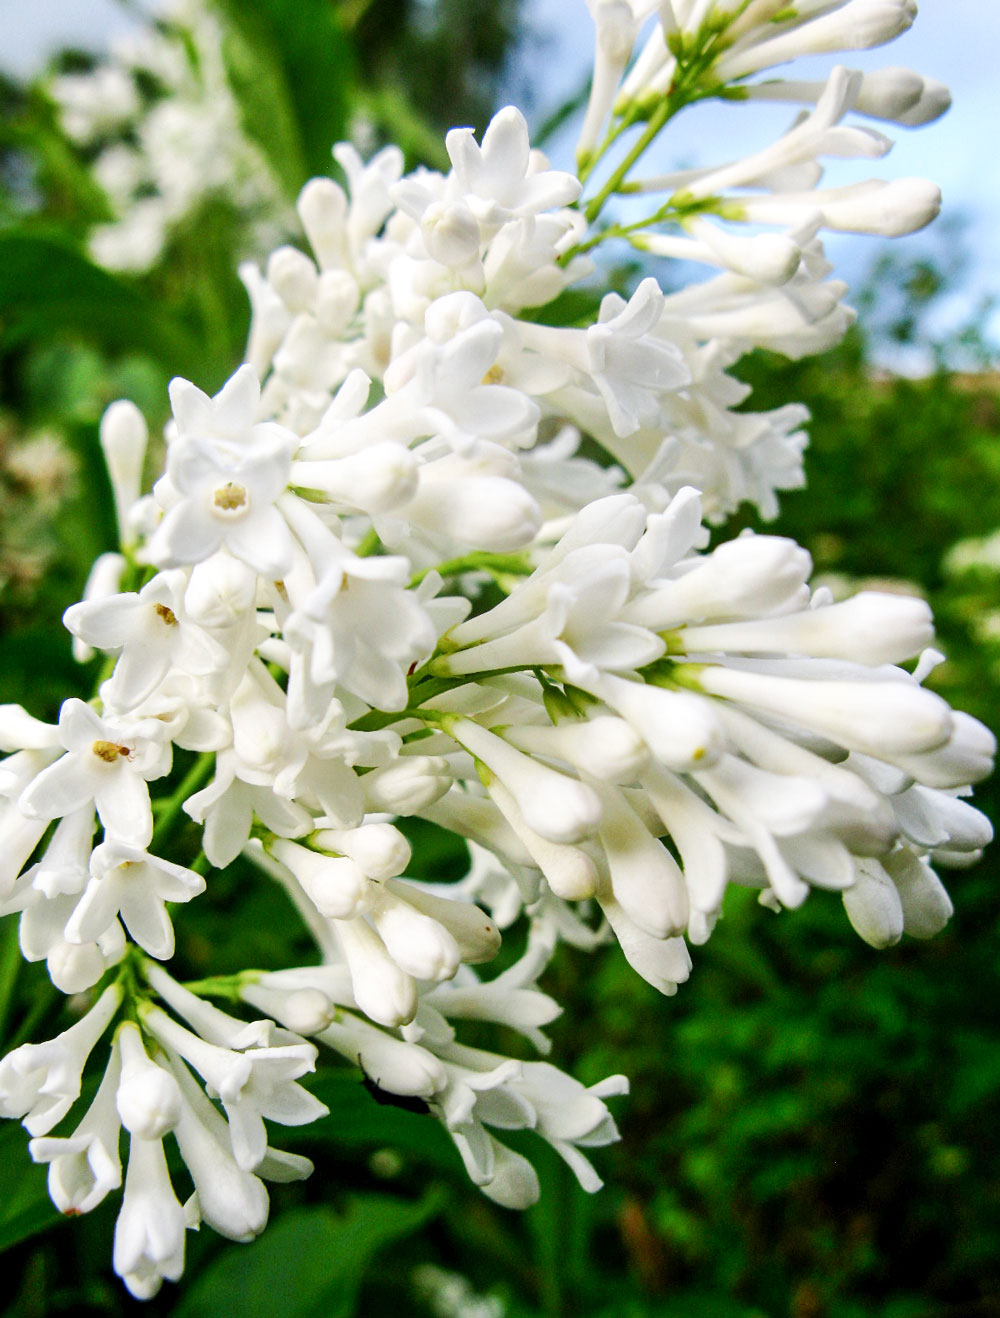 Zuri_Zuberi_flowers_white_2